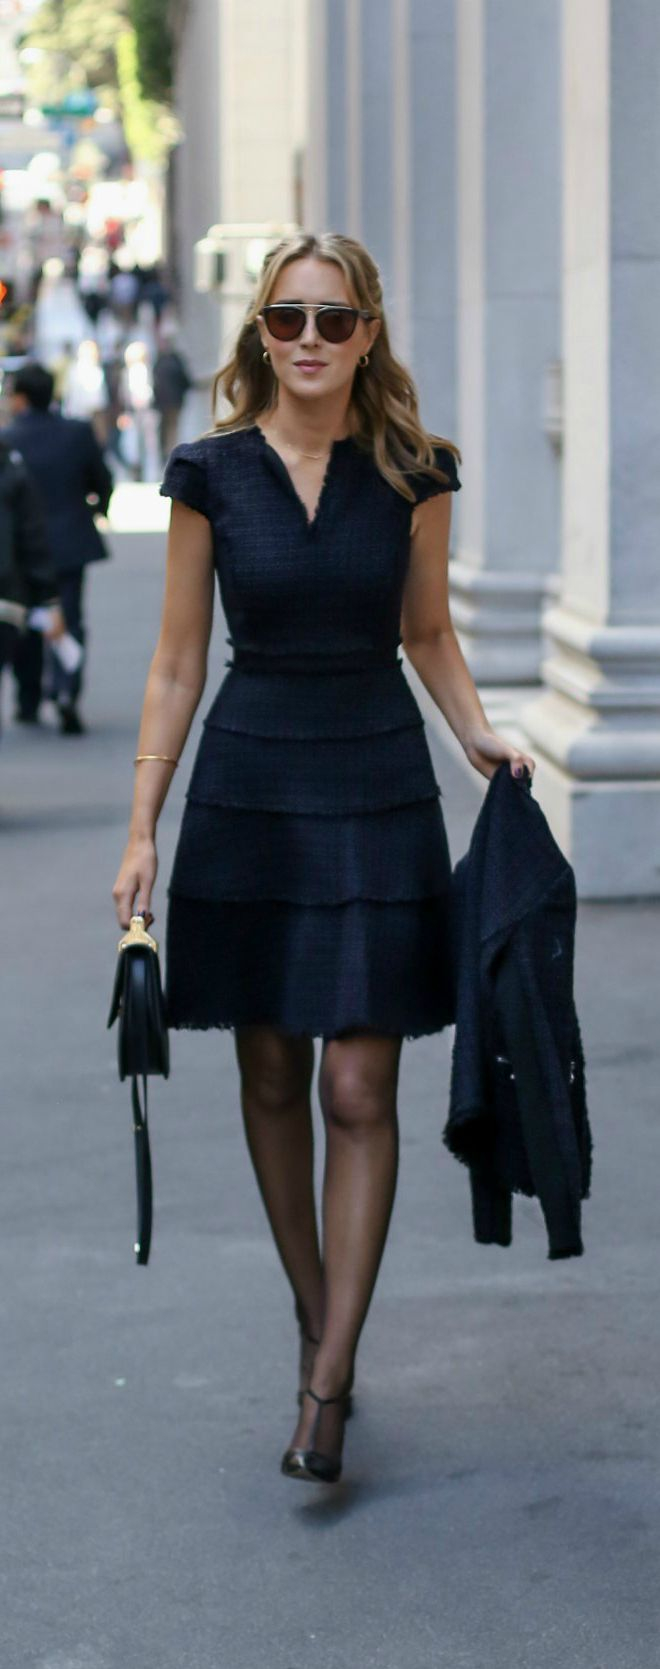 Black and navy tweed fit and flare short sleeve dress with coordinating  suit jacket perfect for fall and winter business formal work events   rebecca taylor 9e8ea070888cd